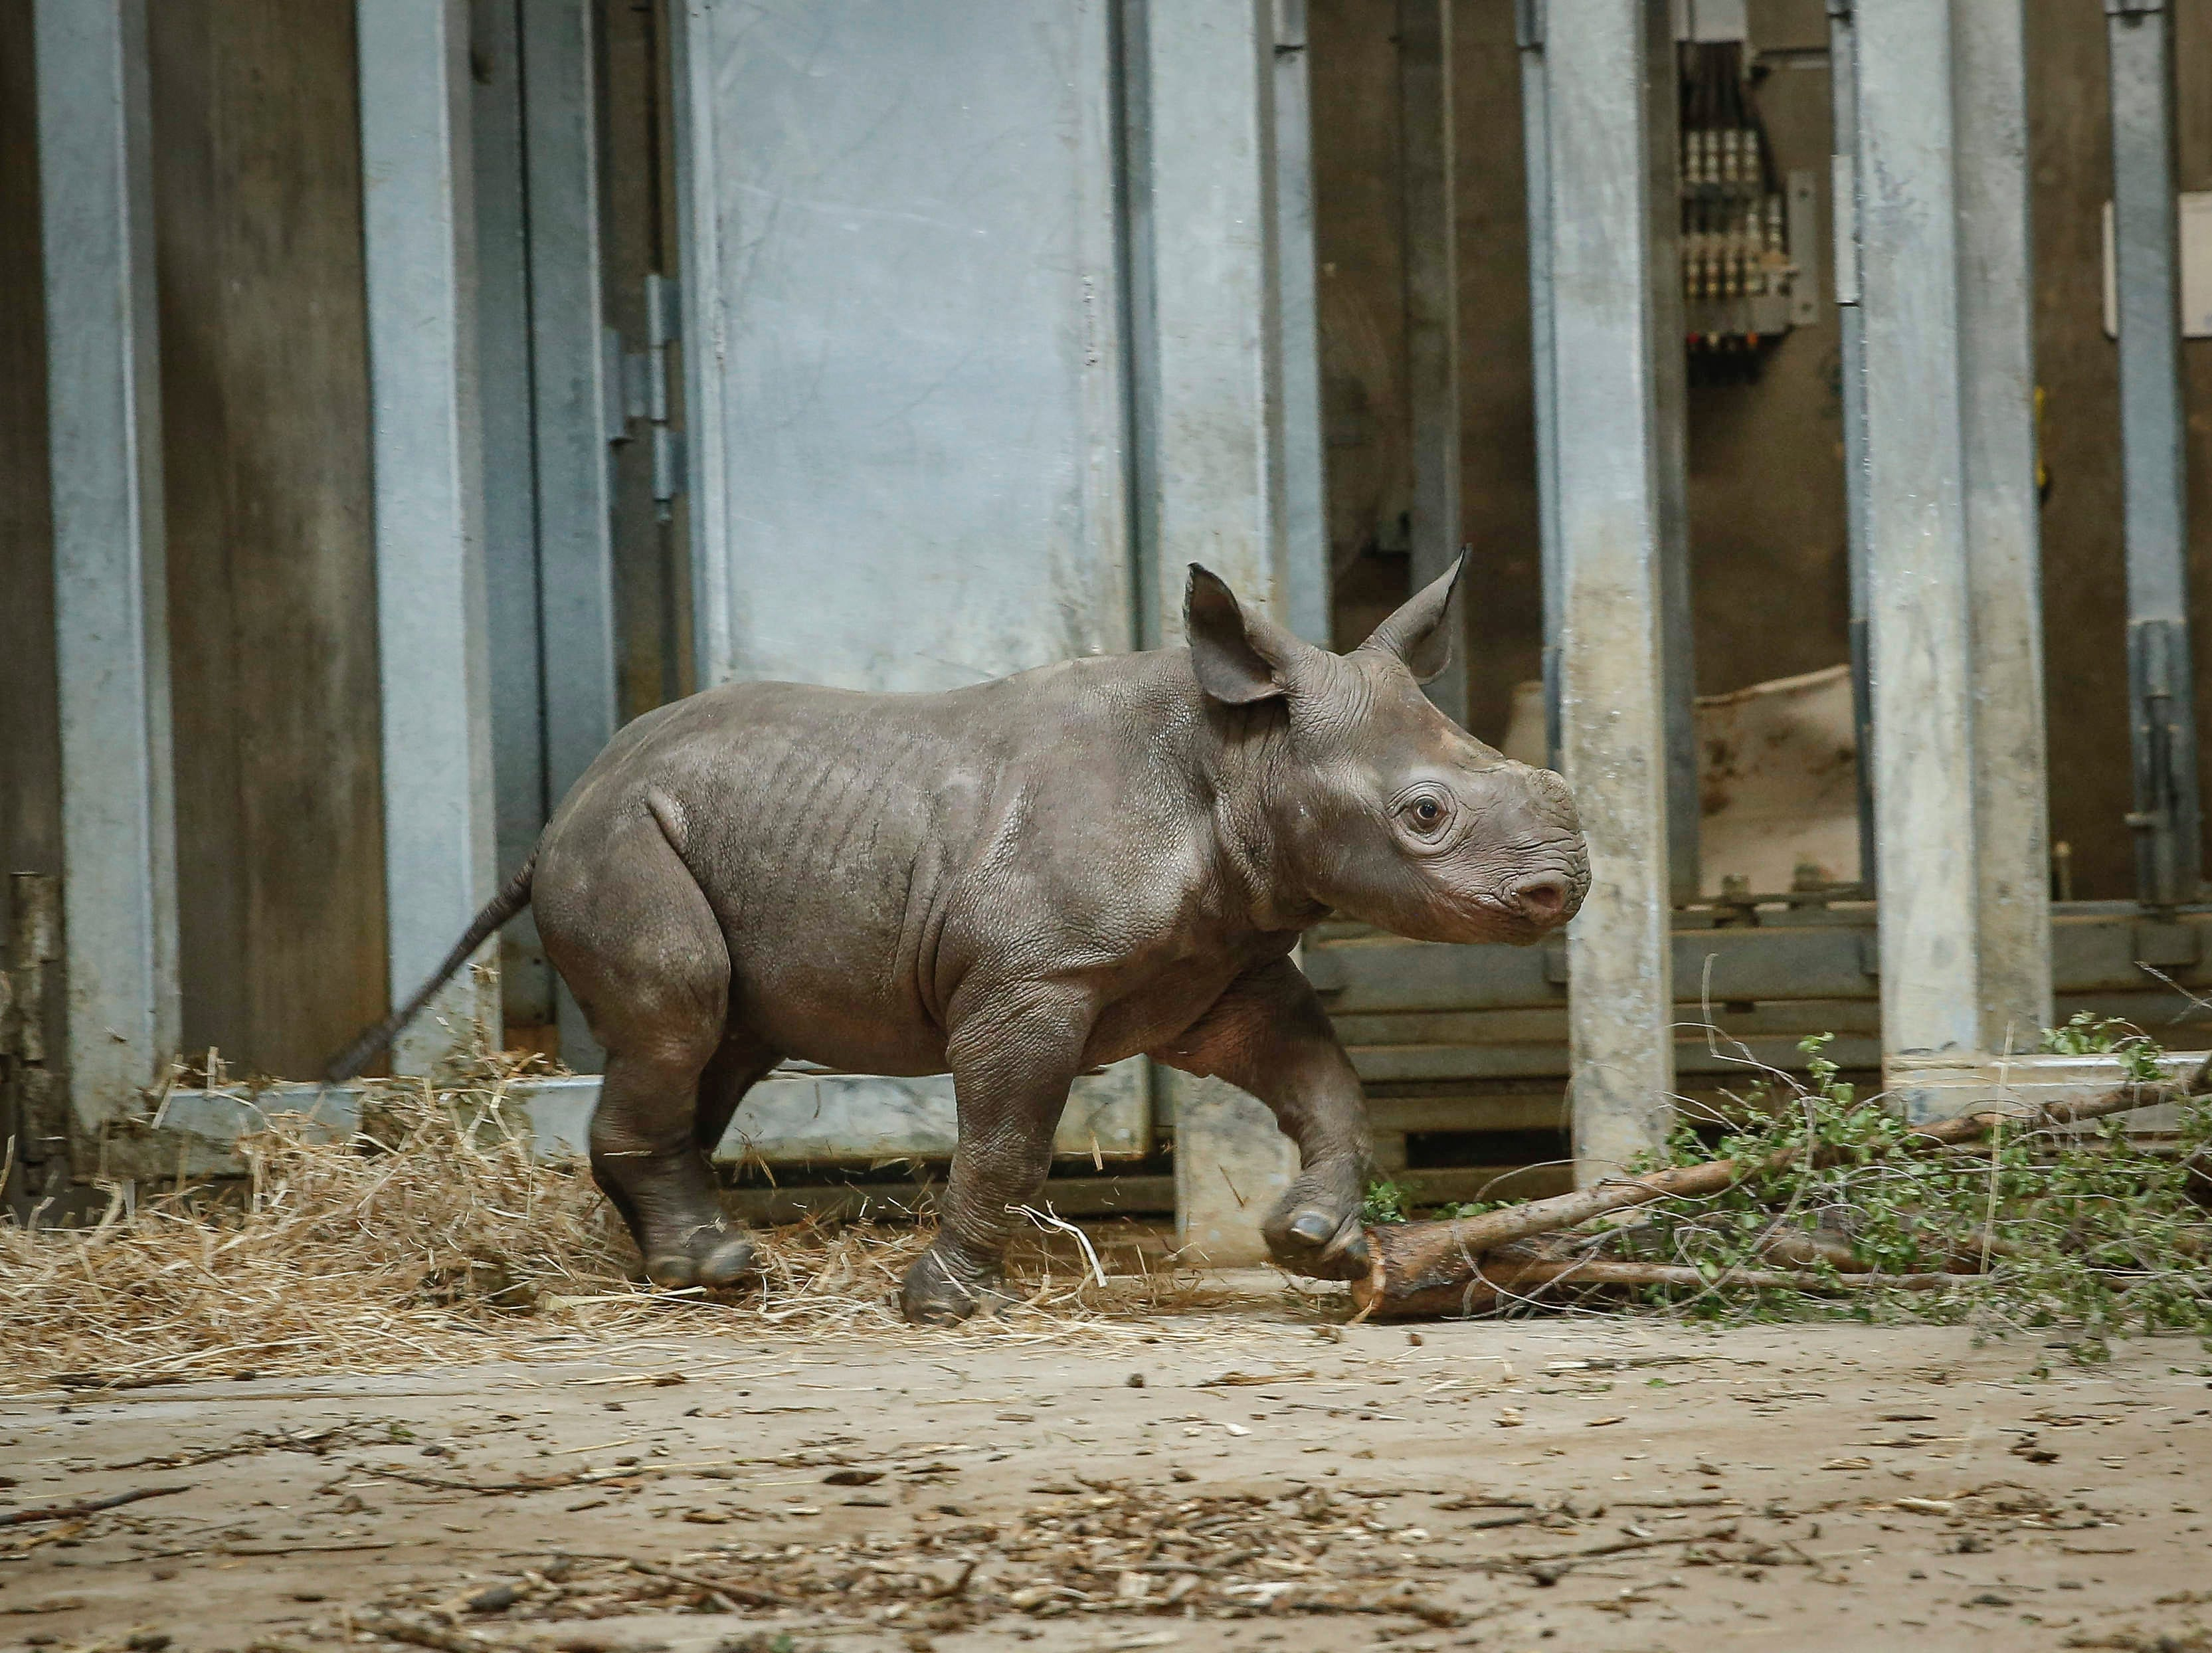 Kamara, a baby rhinoceros, runs after her mother, Ayana, on Saturday, May 11, 2019, at the Blank Park Zoo in Des Moines. It was the first day the public got to get a personal look at Kamara, who was born on April 5.